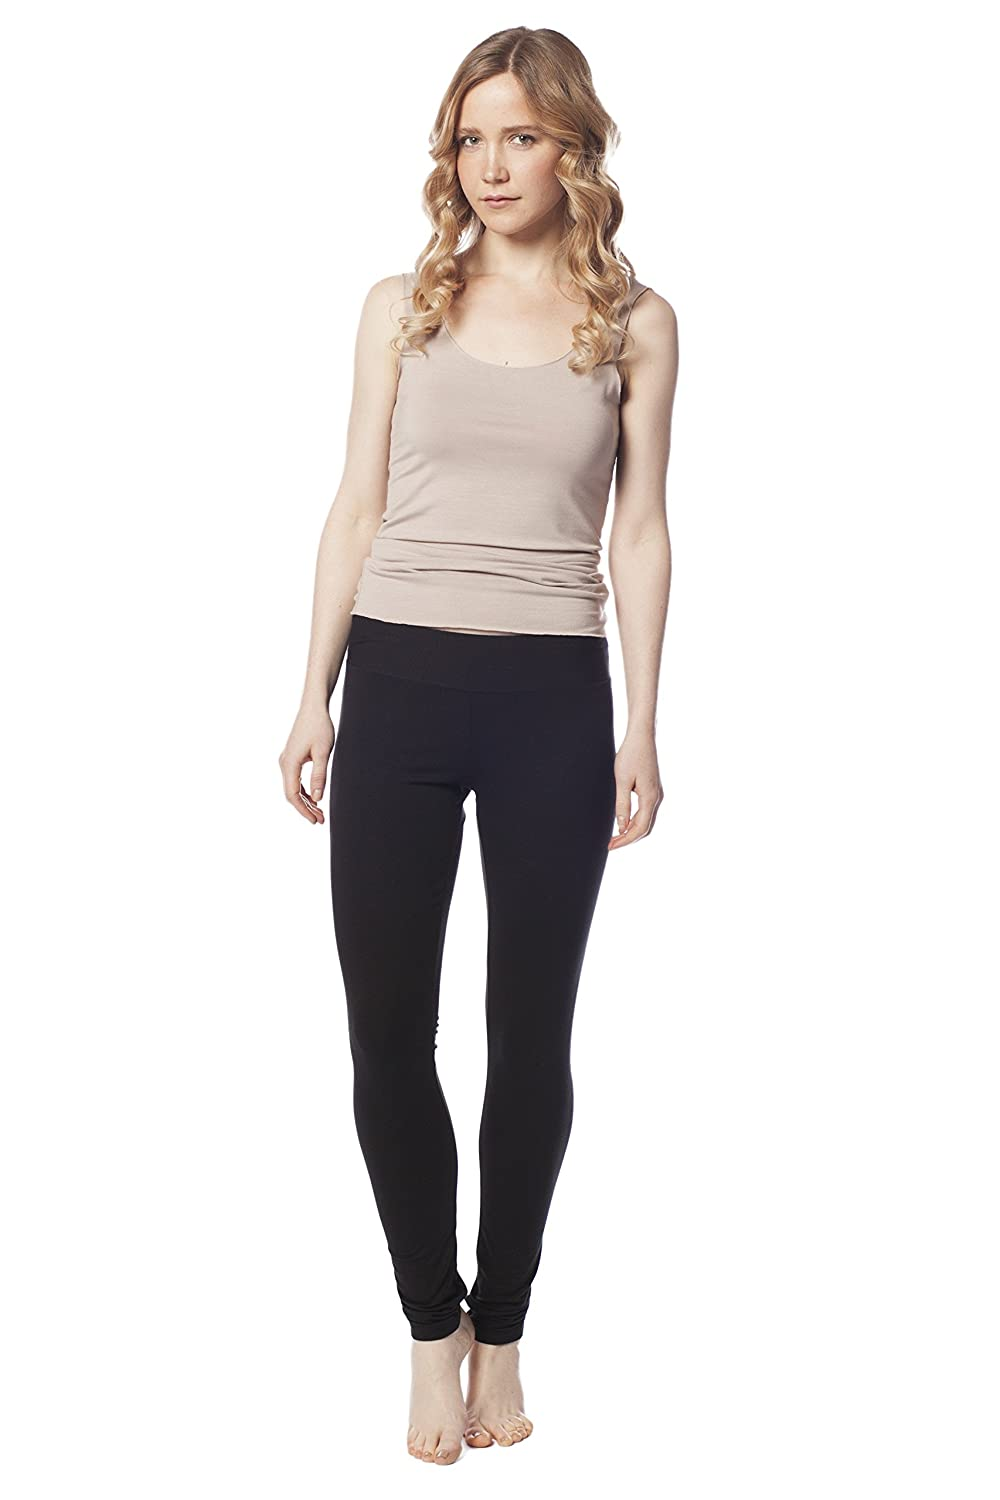 A to Z Long Modal Leggings DL-2